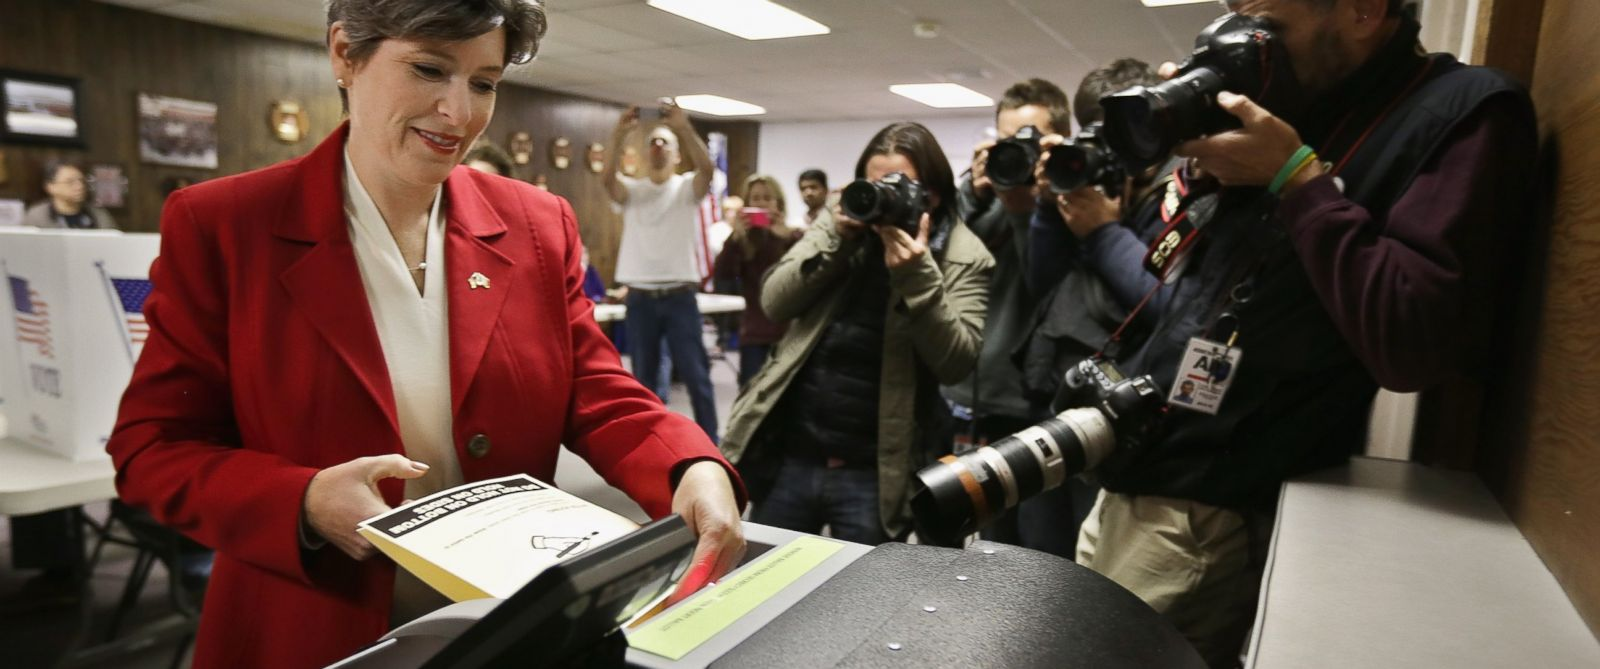 PHOTO: Republican U.S. Senate candidate Joni Ernst casts her ballot on election day at the polling place in her hometown fire department, Nov. 4, 2014 in Red Oak, Iowa.